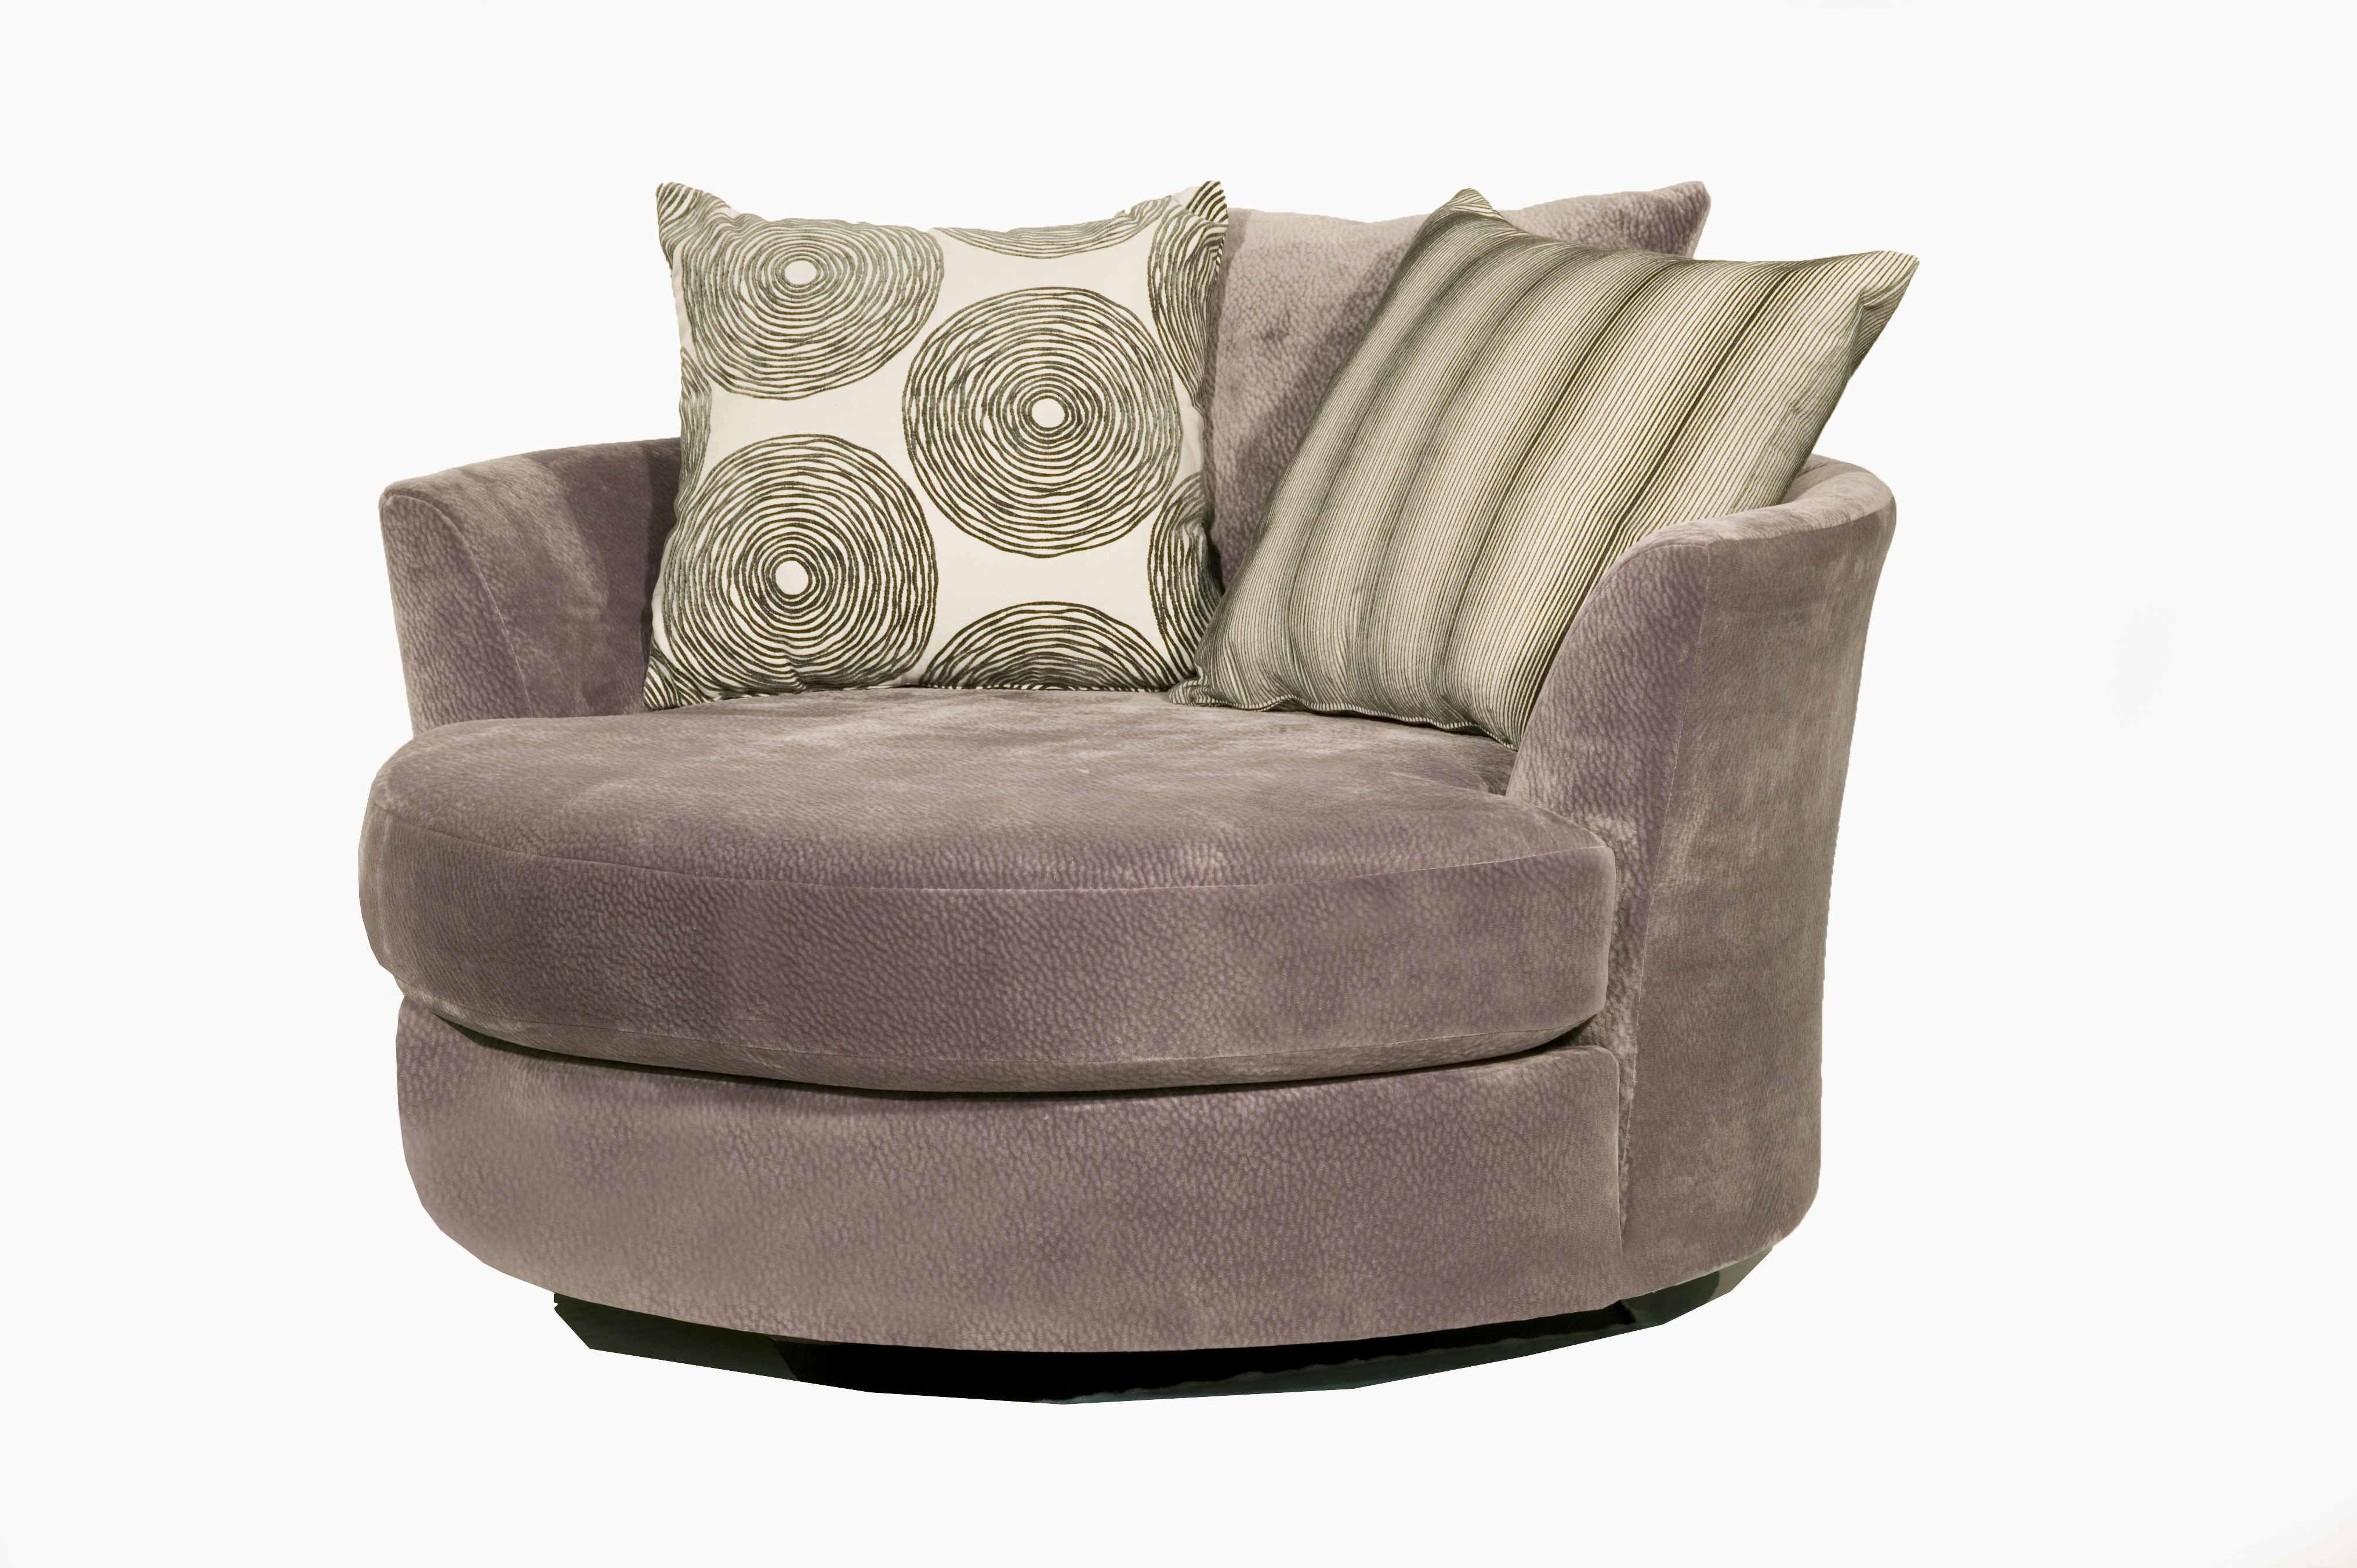 Sofas With Swivel Chair Pertaining To Preferred Jozz Round Swivel Chair (35 Photos) (View 13 of 15)